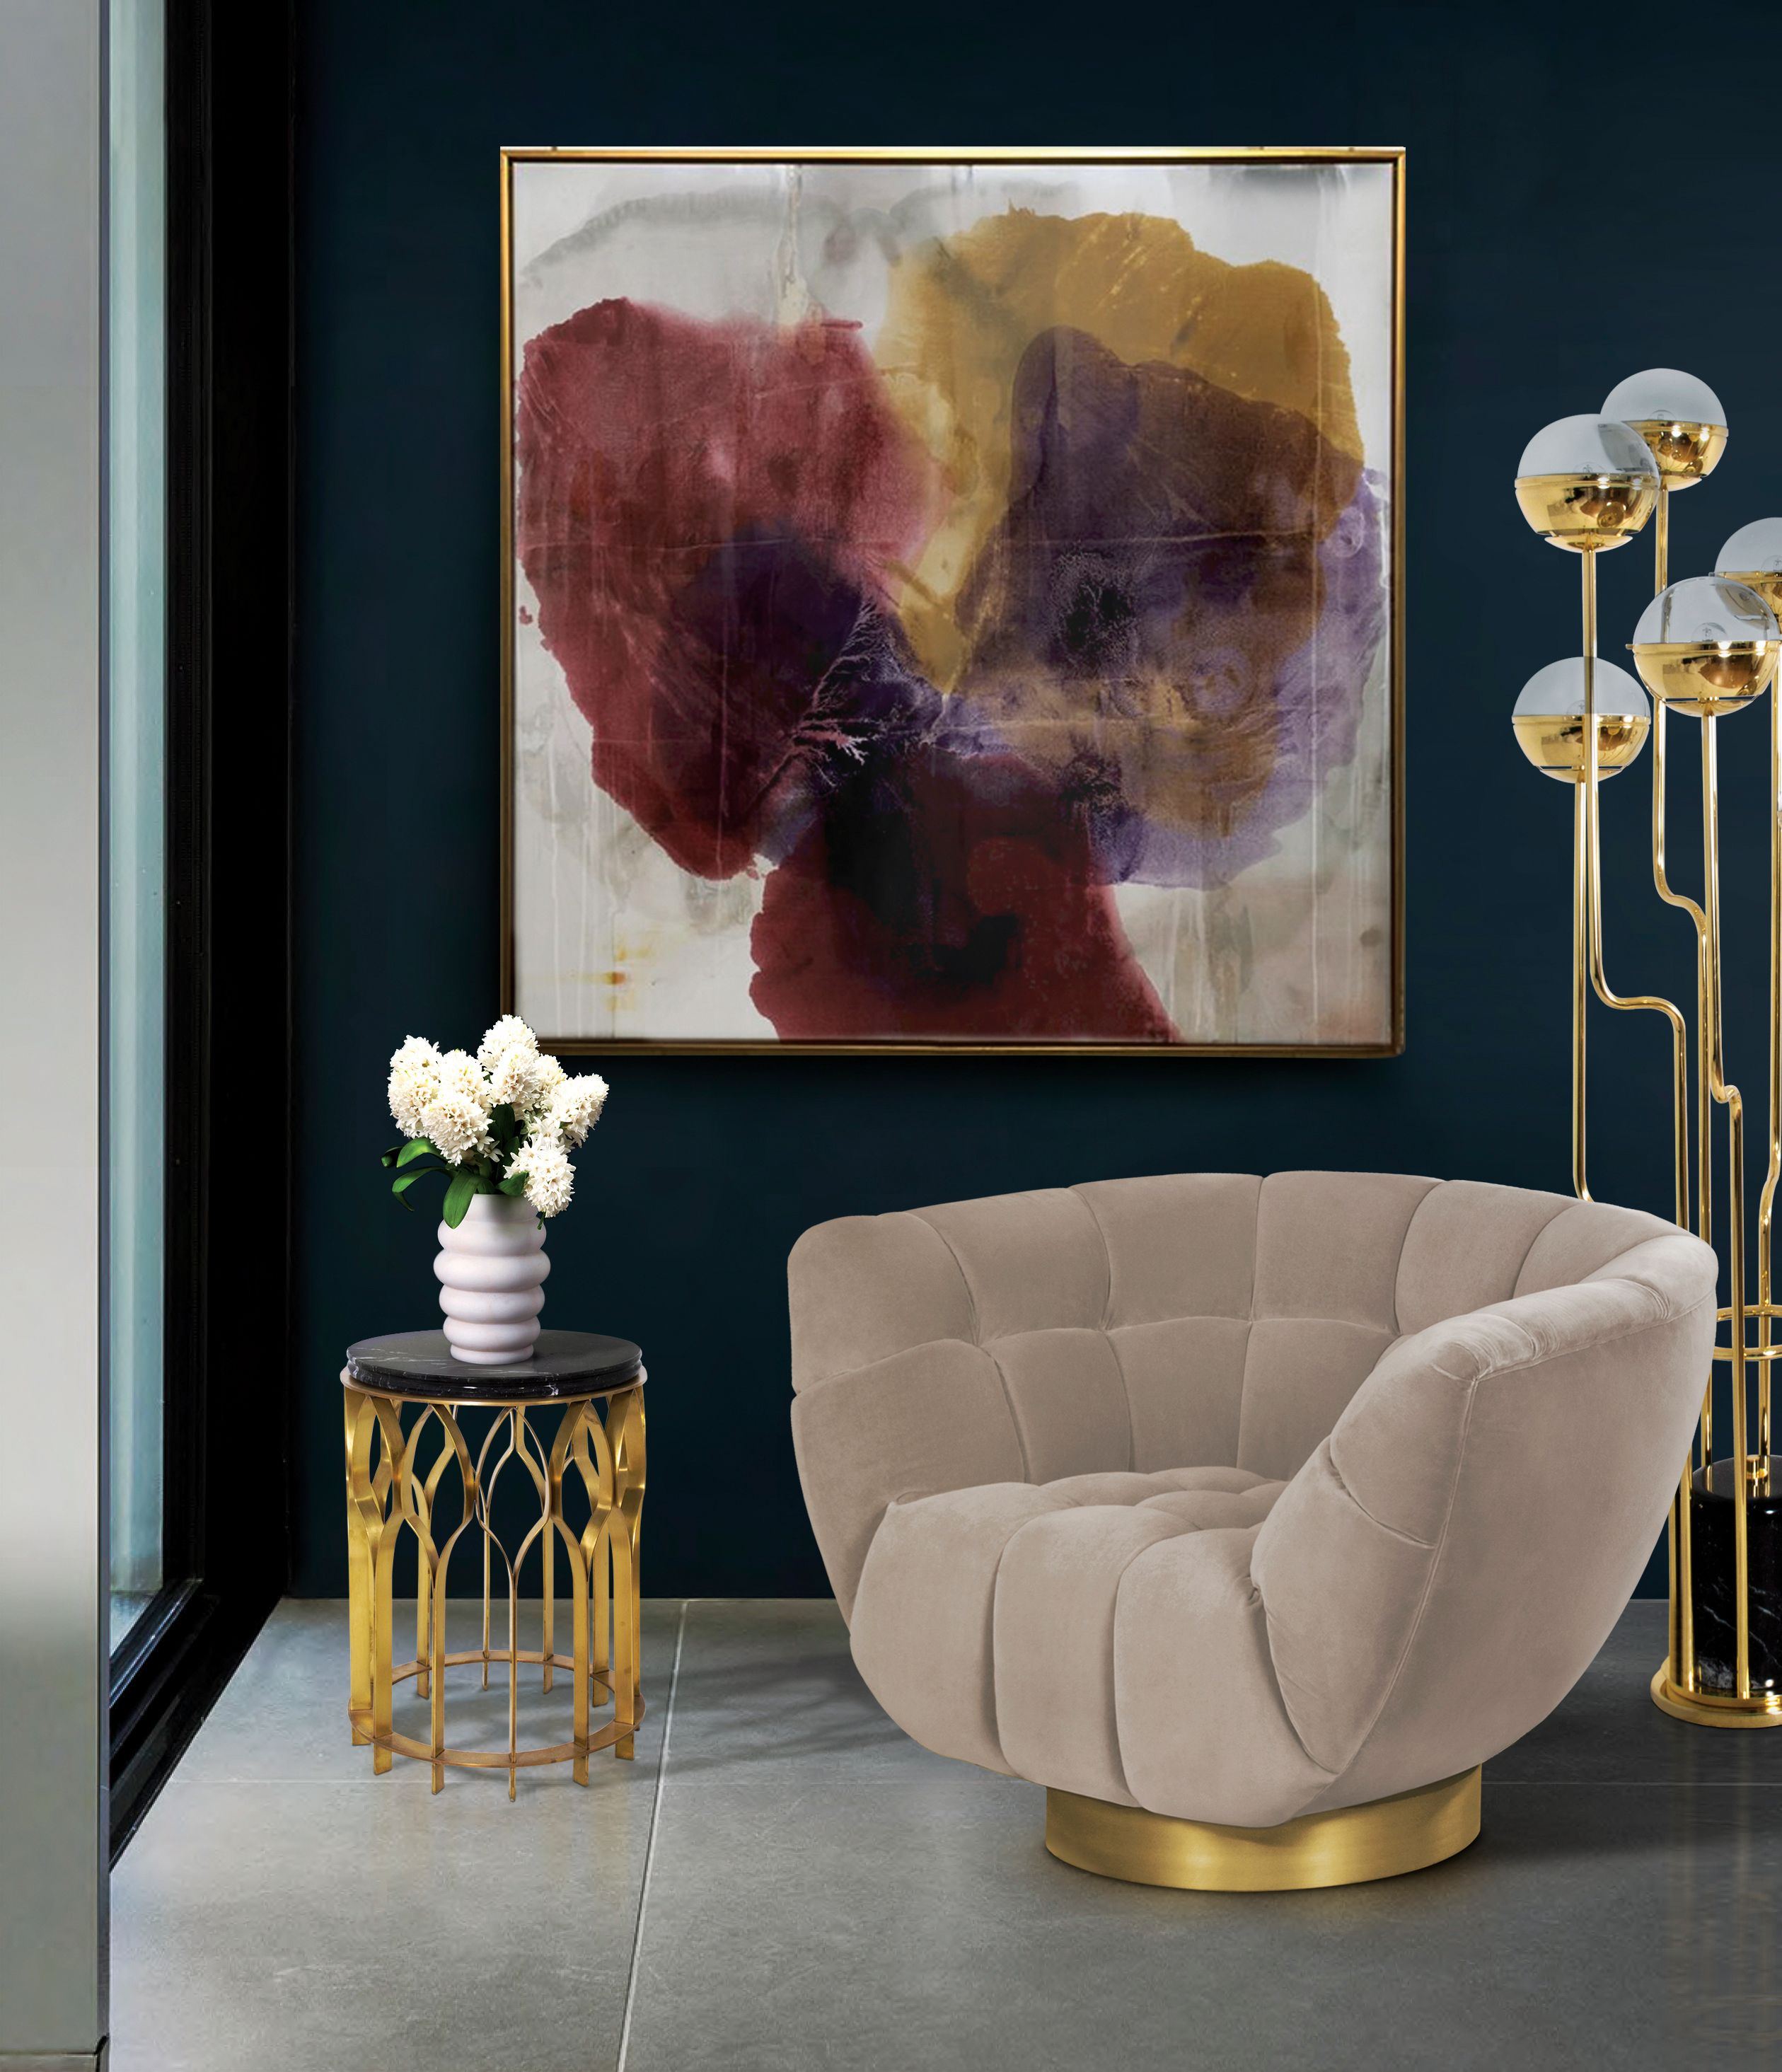 Designer Chairs For Living Room Extraordinary 11 Spectacular Velvet Chairs That Your Living Room Set Longs For Design Inspiration